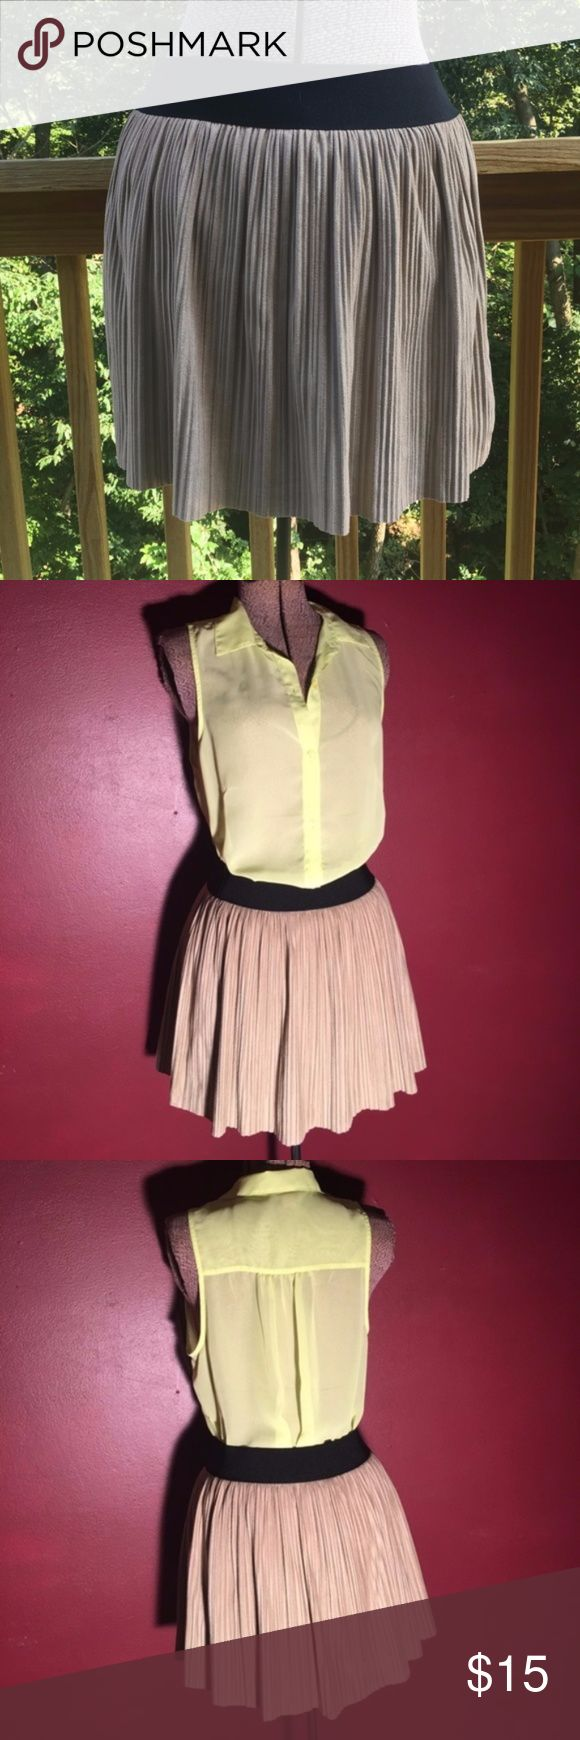 BCBGMAXAZRIA Kaysa Khaki Pleated Mini Skirt XS BCBGMAXAZRIA 'kaysa' pleated mini skirt in excellent used condition. The skirt has a fitted black waistband and an attached liner underneath as pictured.  Shell: 92% polyester 8% spandex. Lining: 64% cotton 33% nylon 3% spandex. Dry clean only.  Laid flat: waist is 13 1/2 inches  length from top to bottom is about 15 1/2 inches. BCBGMaxAzria Skirts Mini